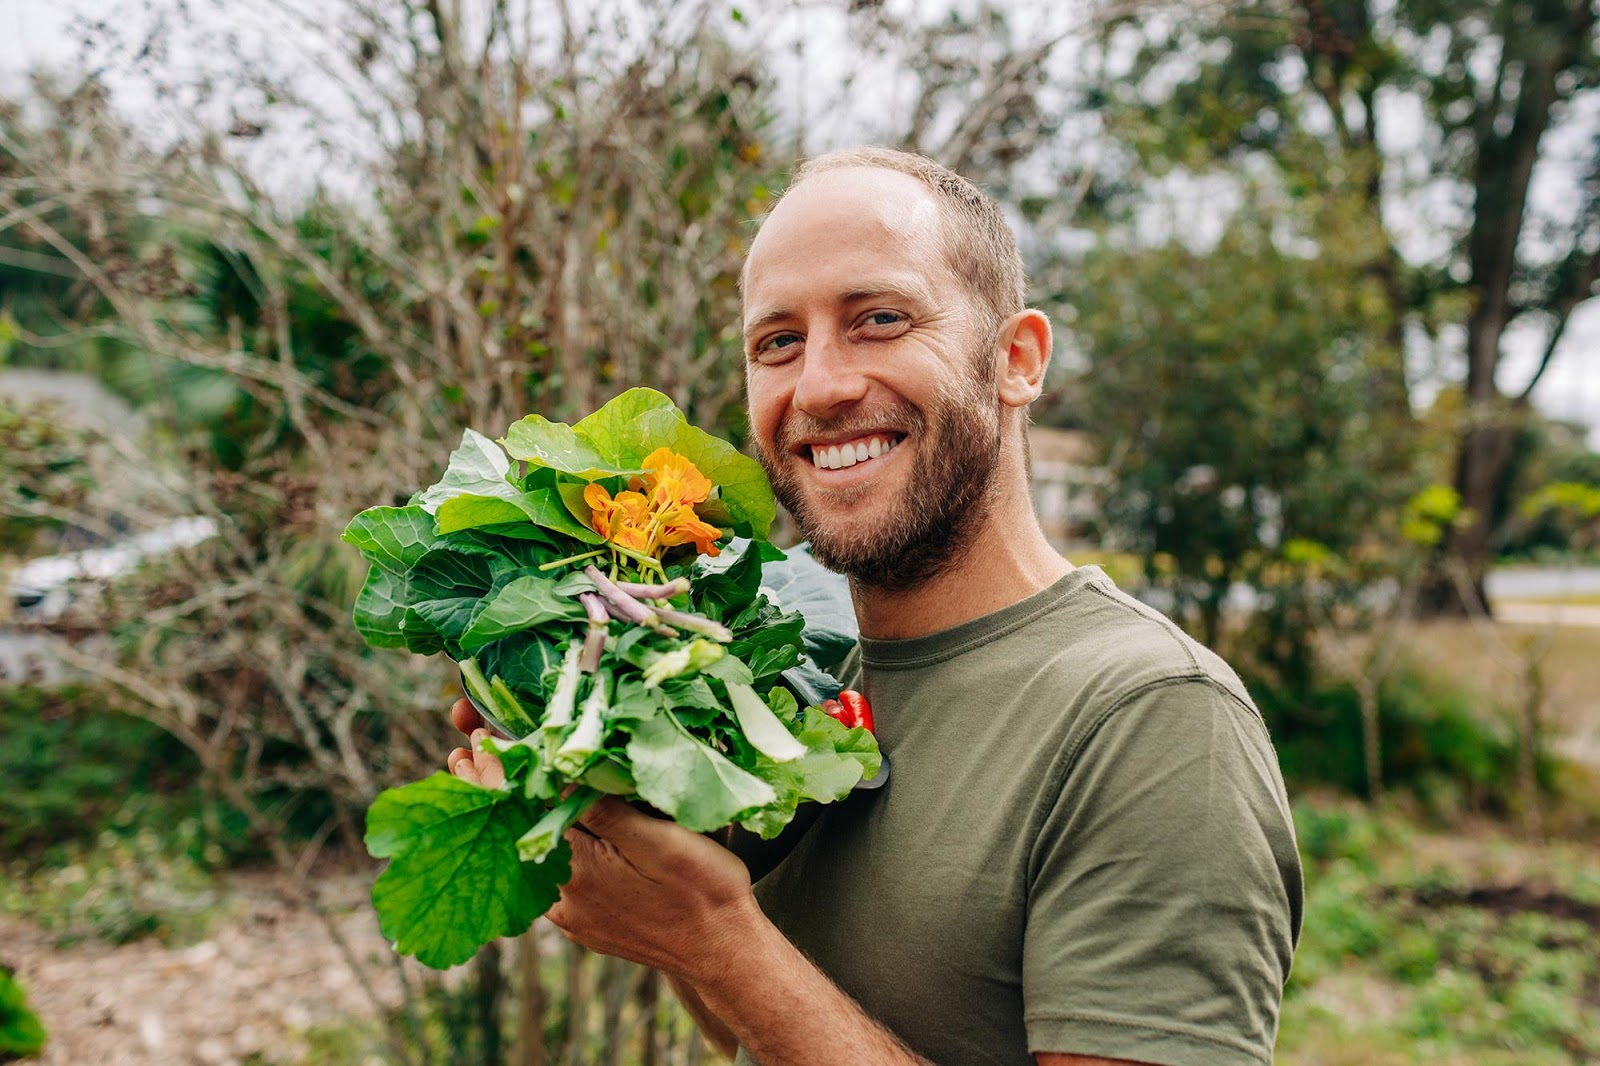 This Man Grew and Foraged All Of His Food For An Entire Year